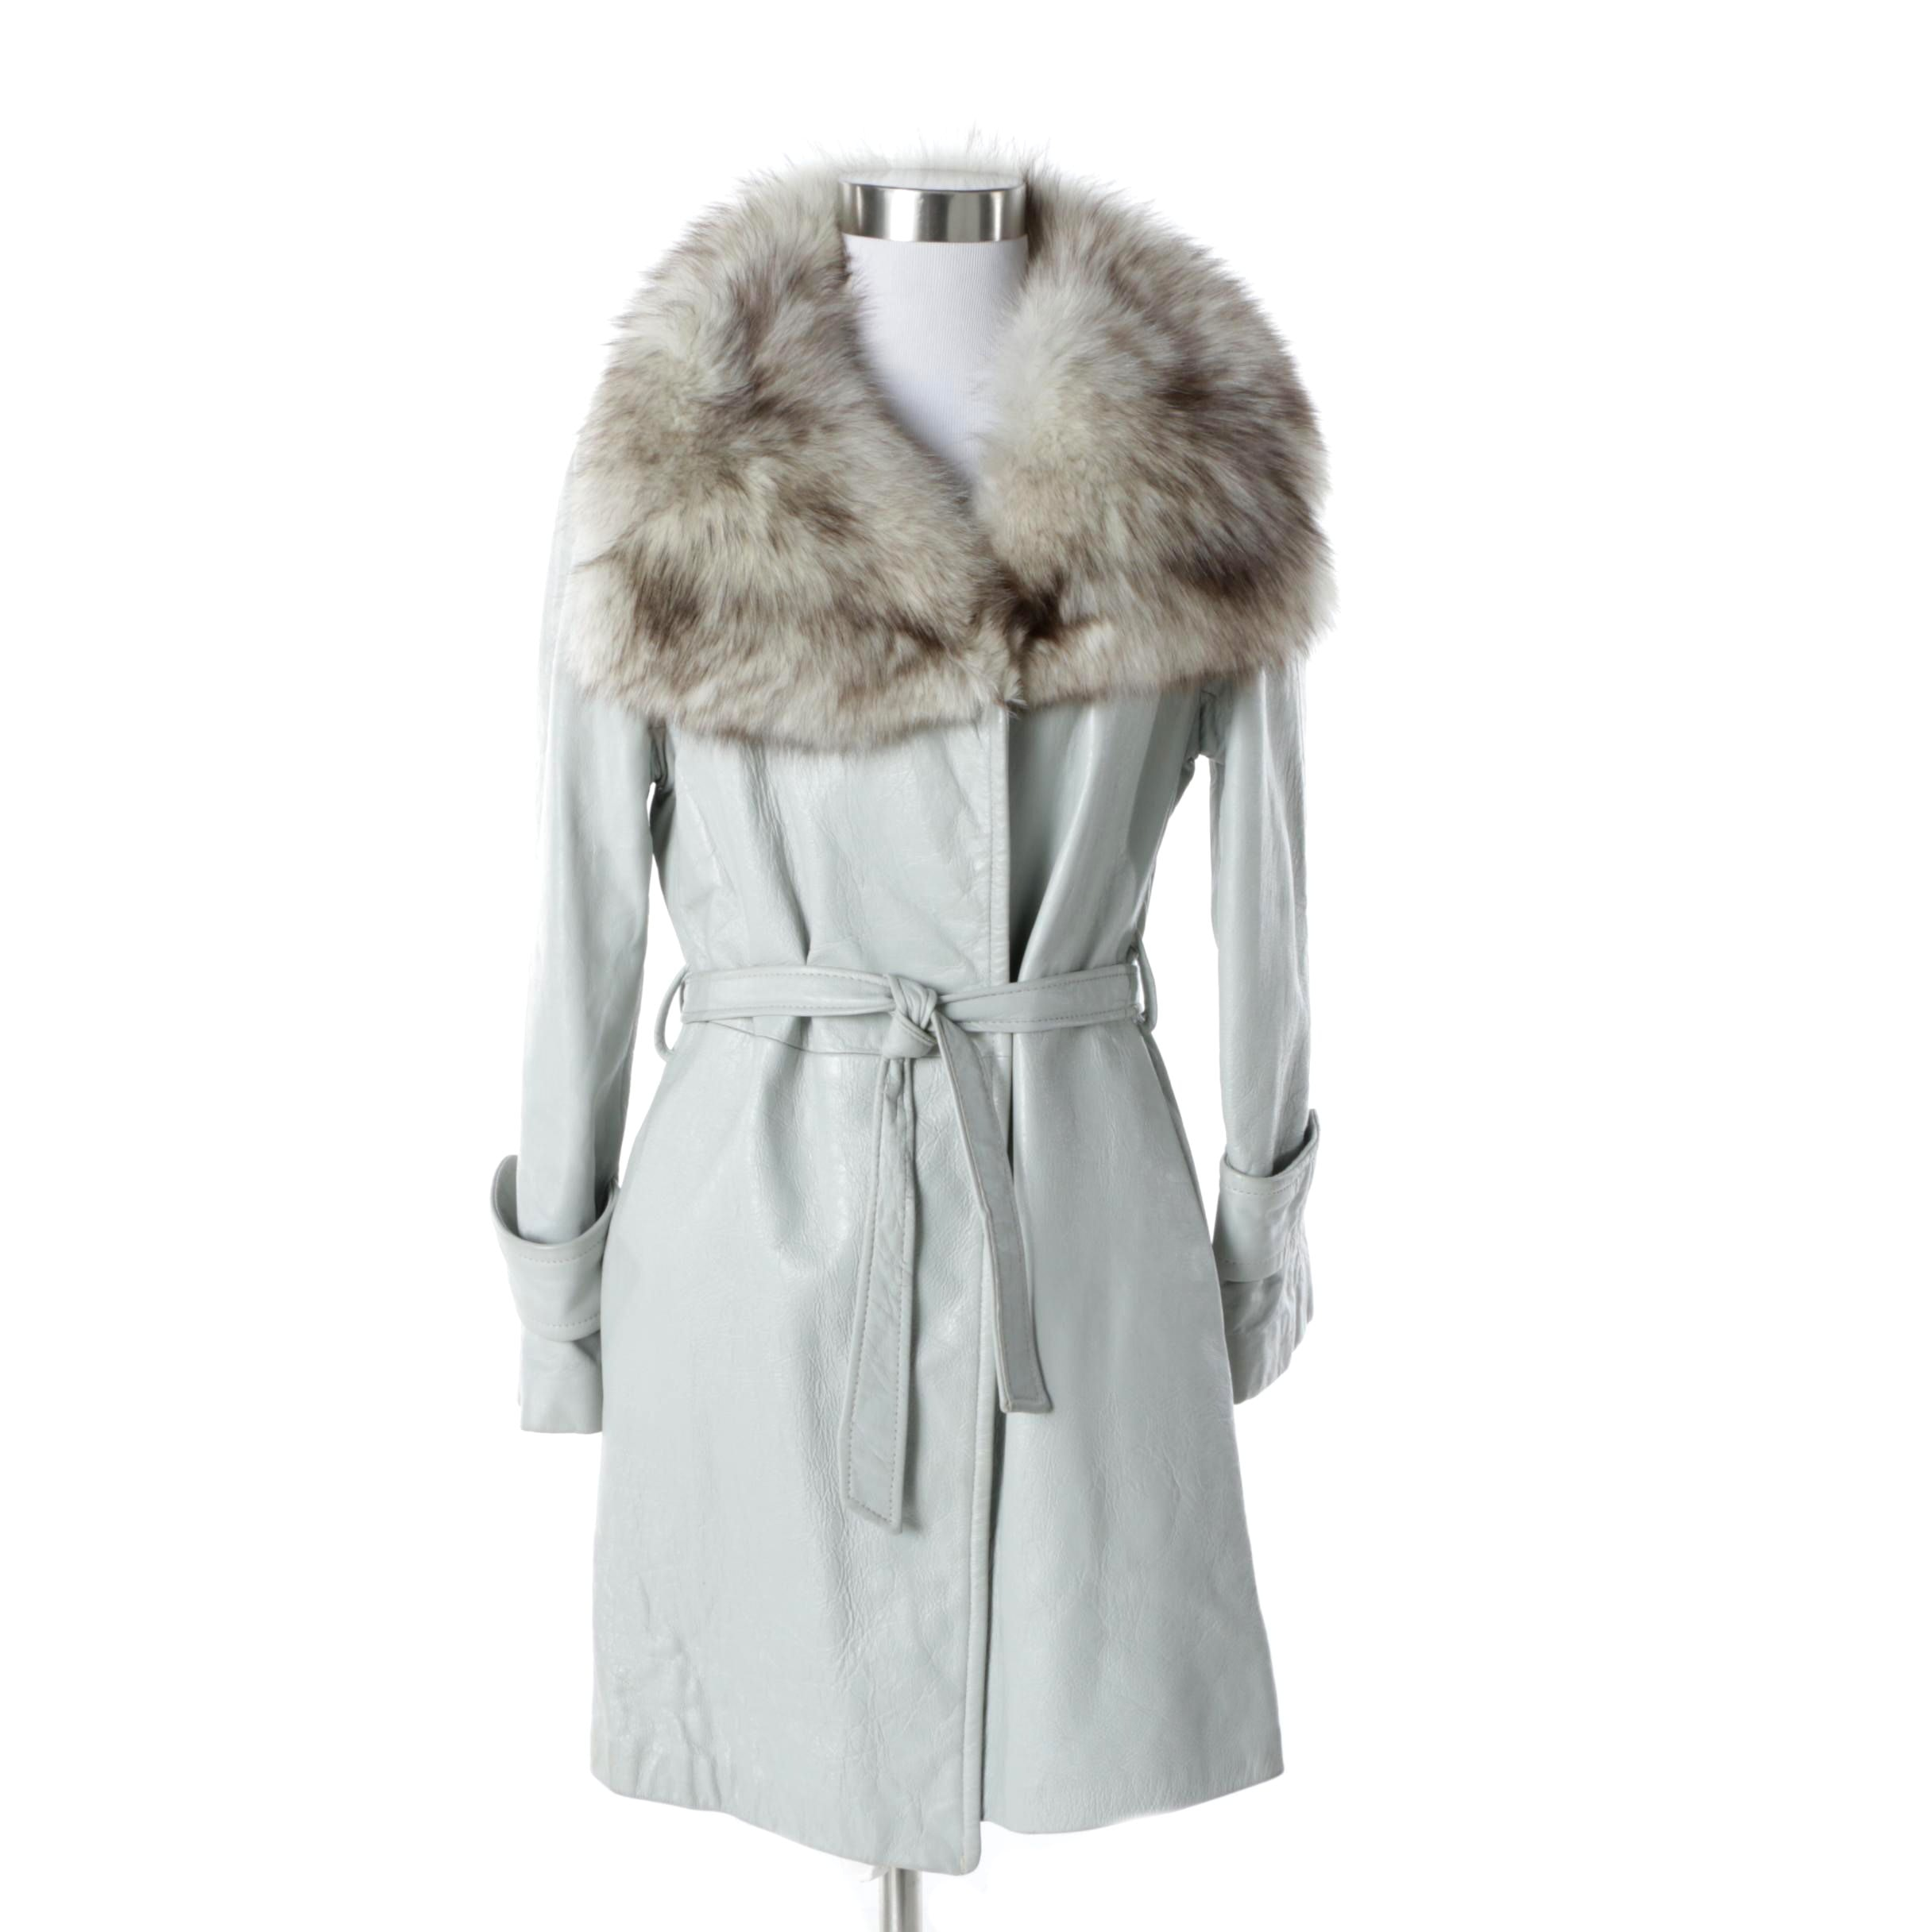 Vintage Grey Leather Coat with Fox Fur Collar